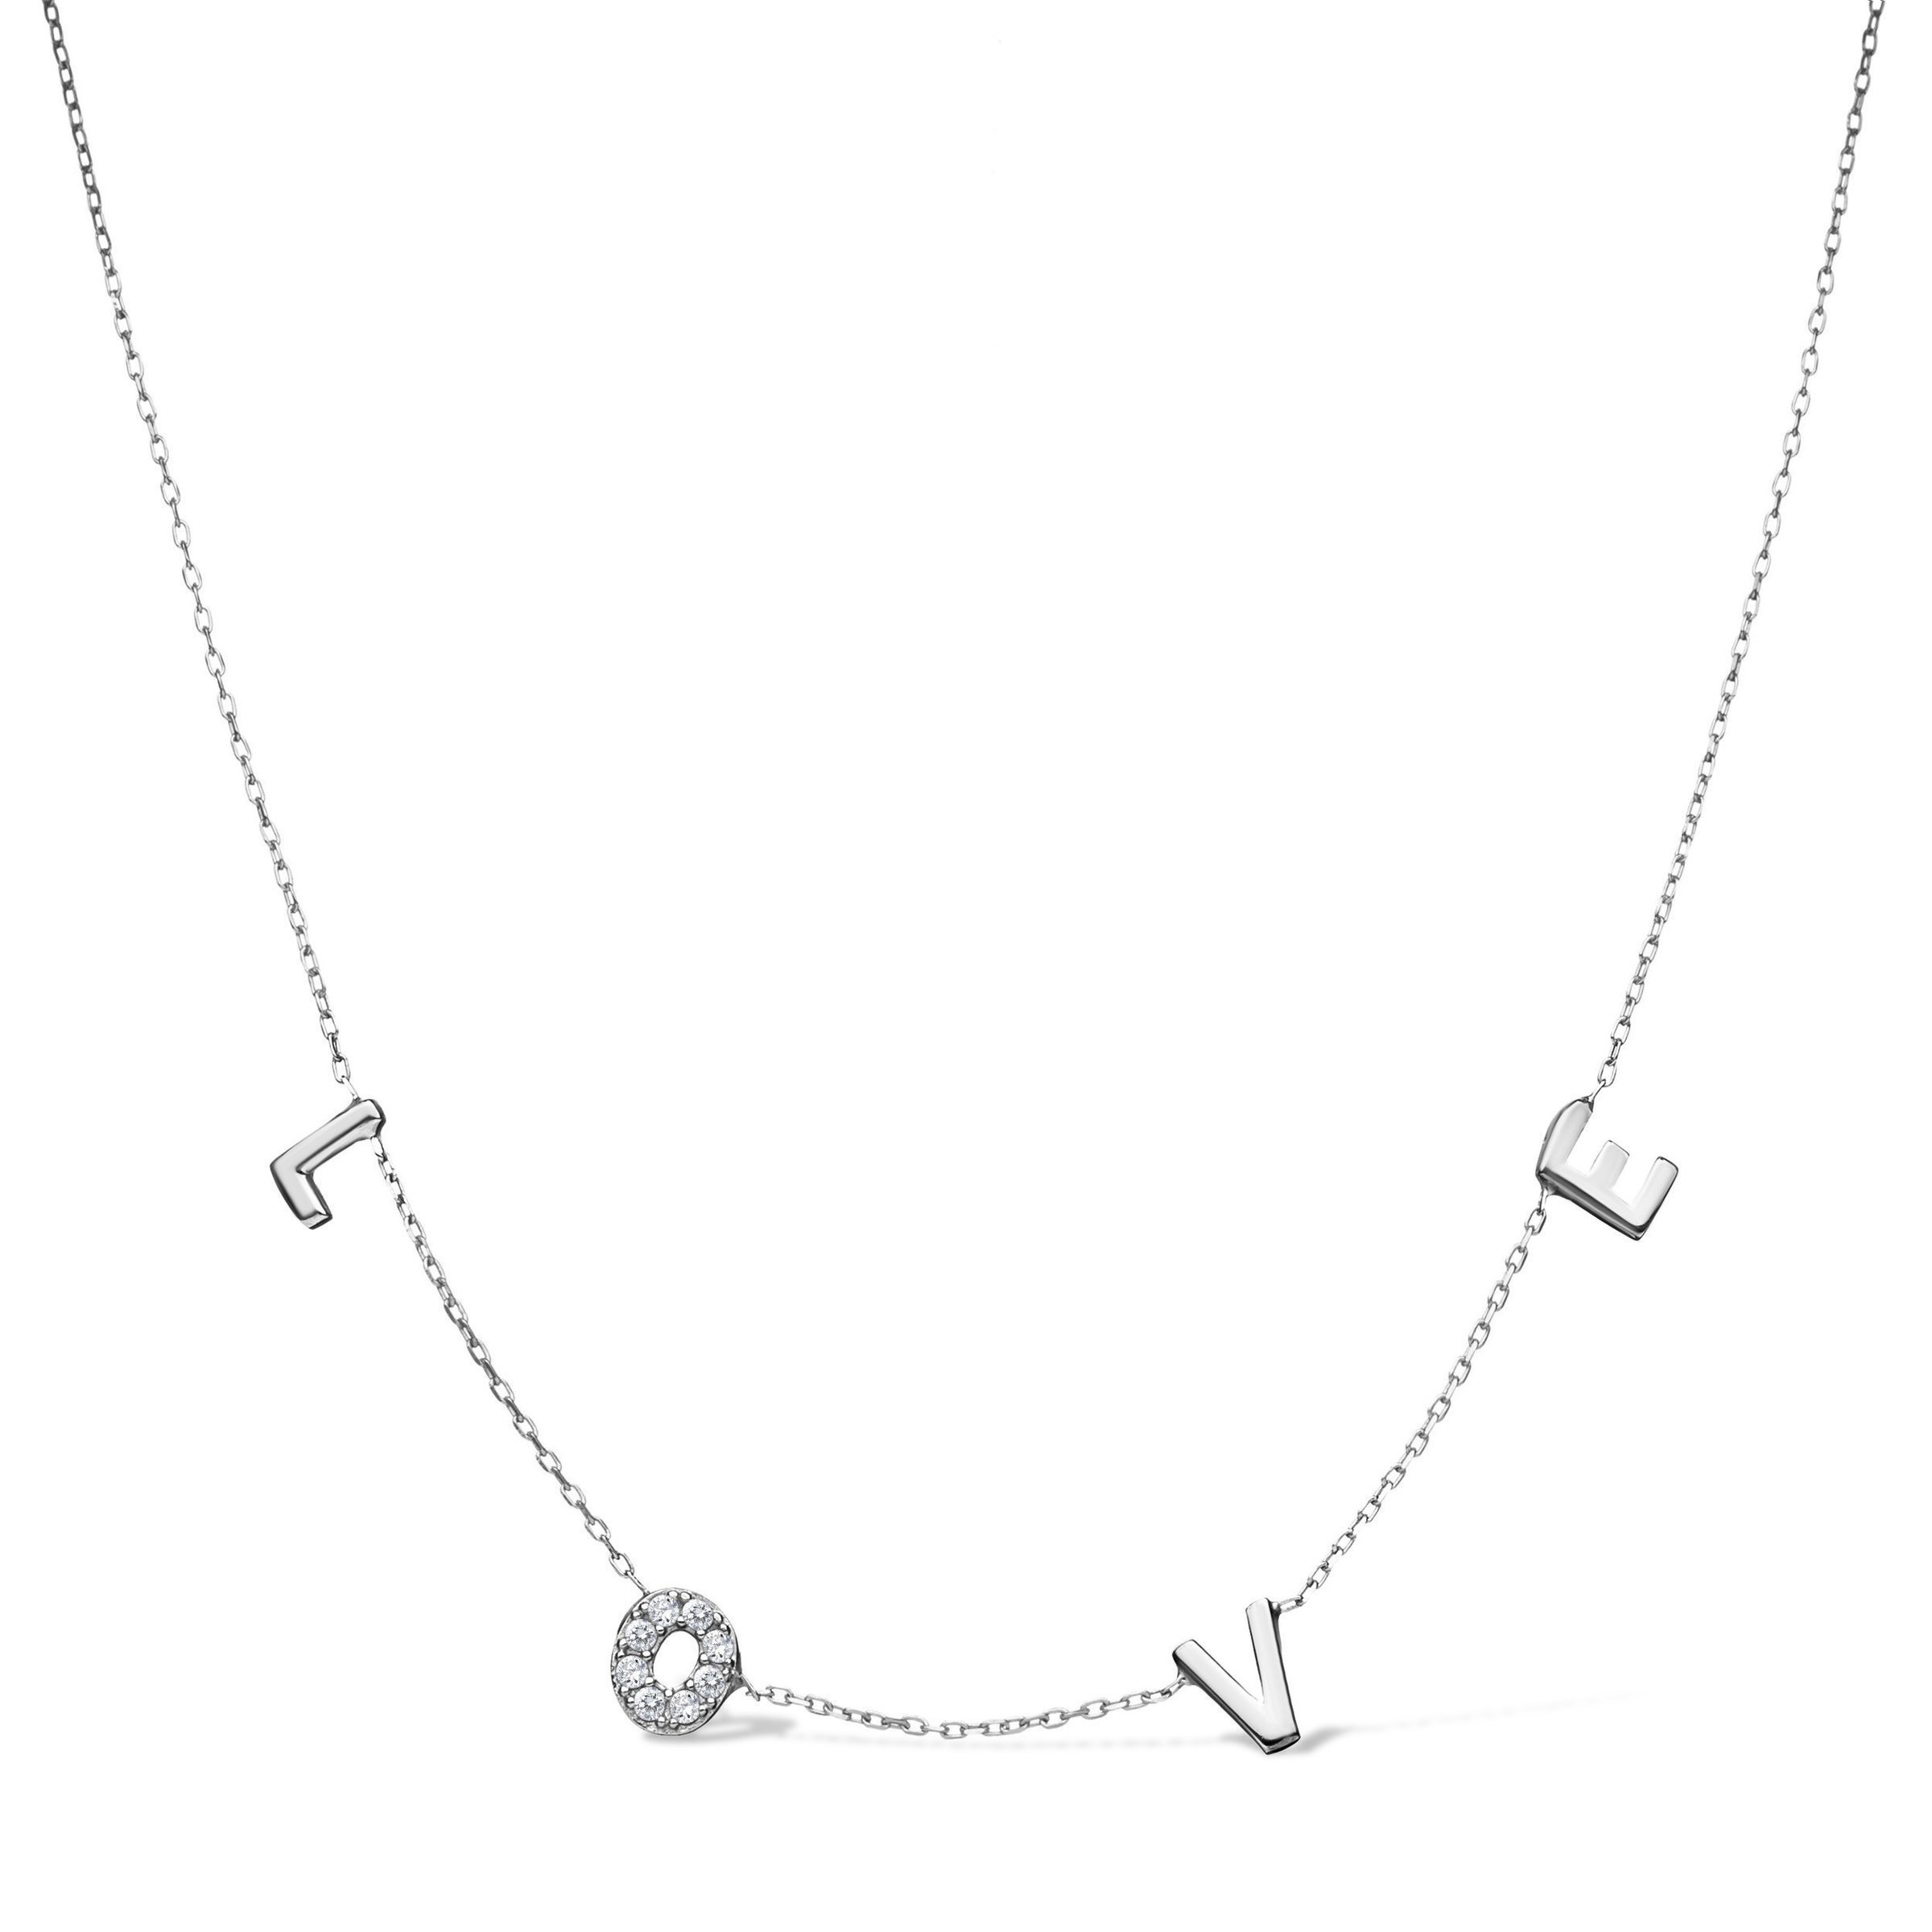 Love necklace in letters made in sterling silver